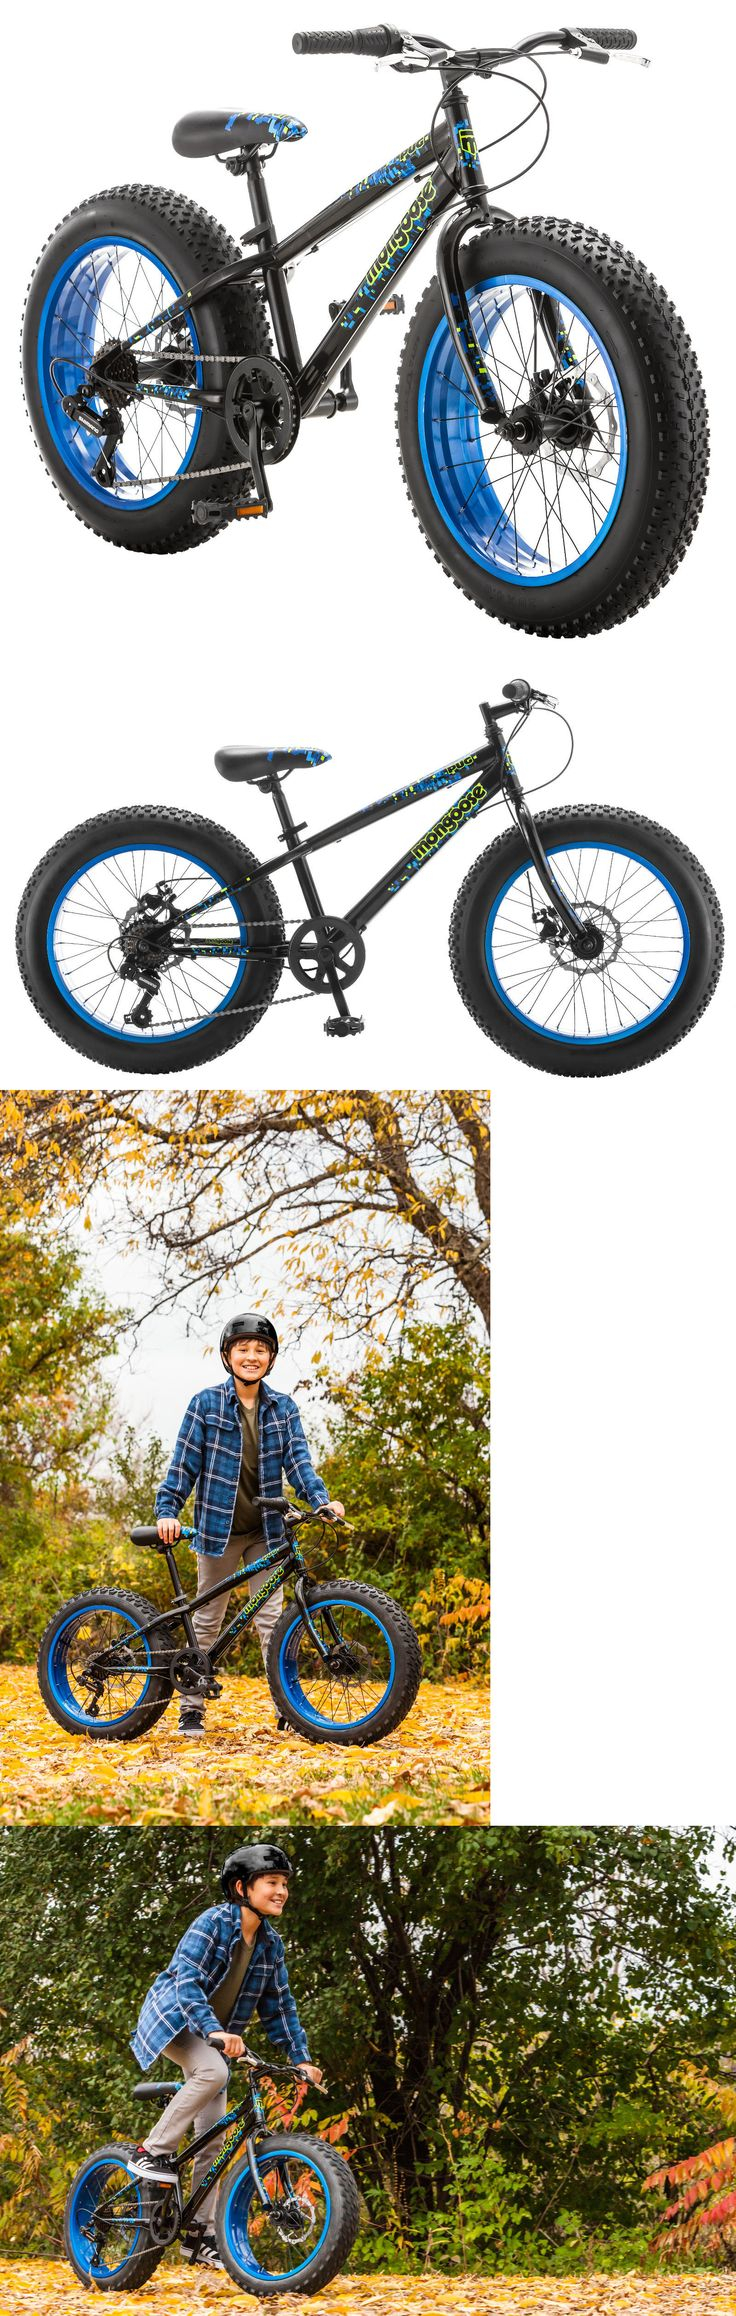 Bicycles 177831: 20 Mongoose Pug Fat Tire Bike Disc Brakes, Black -> BUY IT NOW ONLY: $179.99 on eBay!